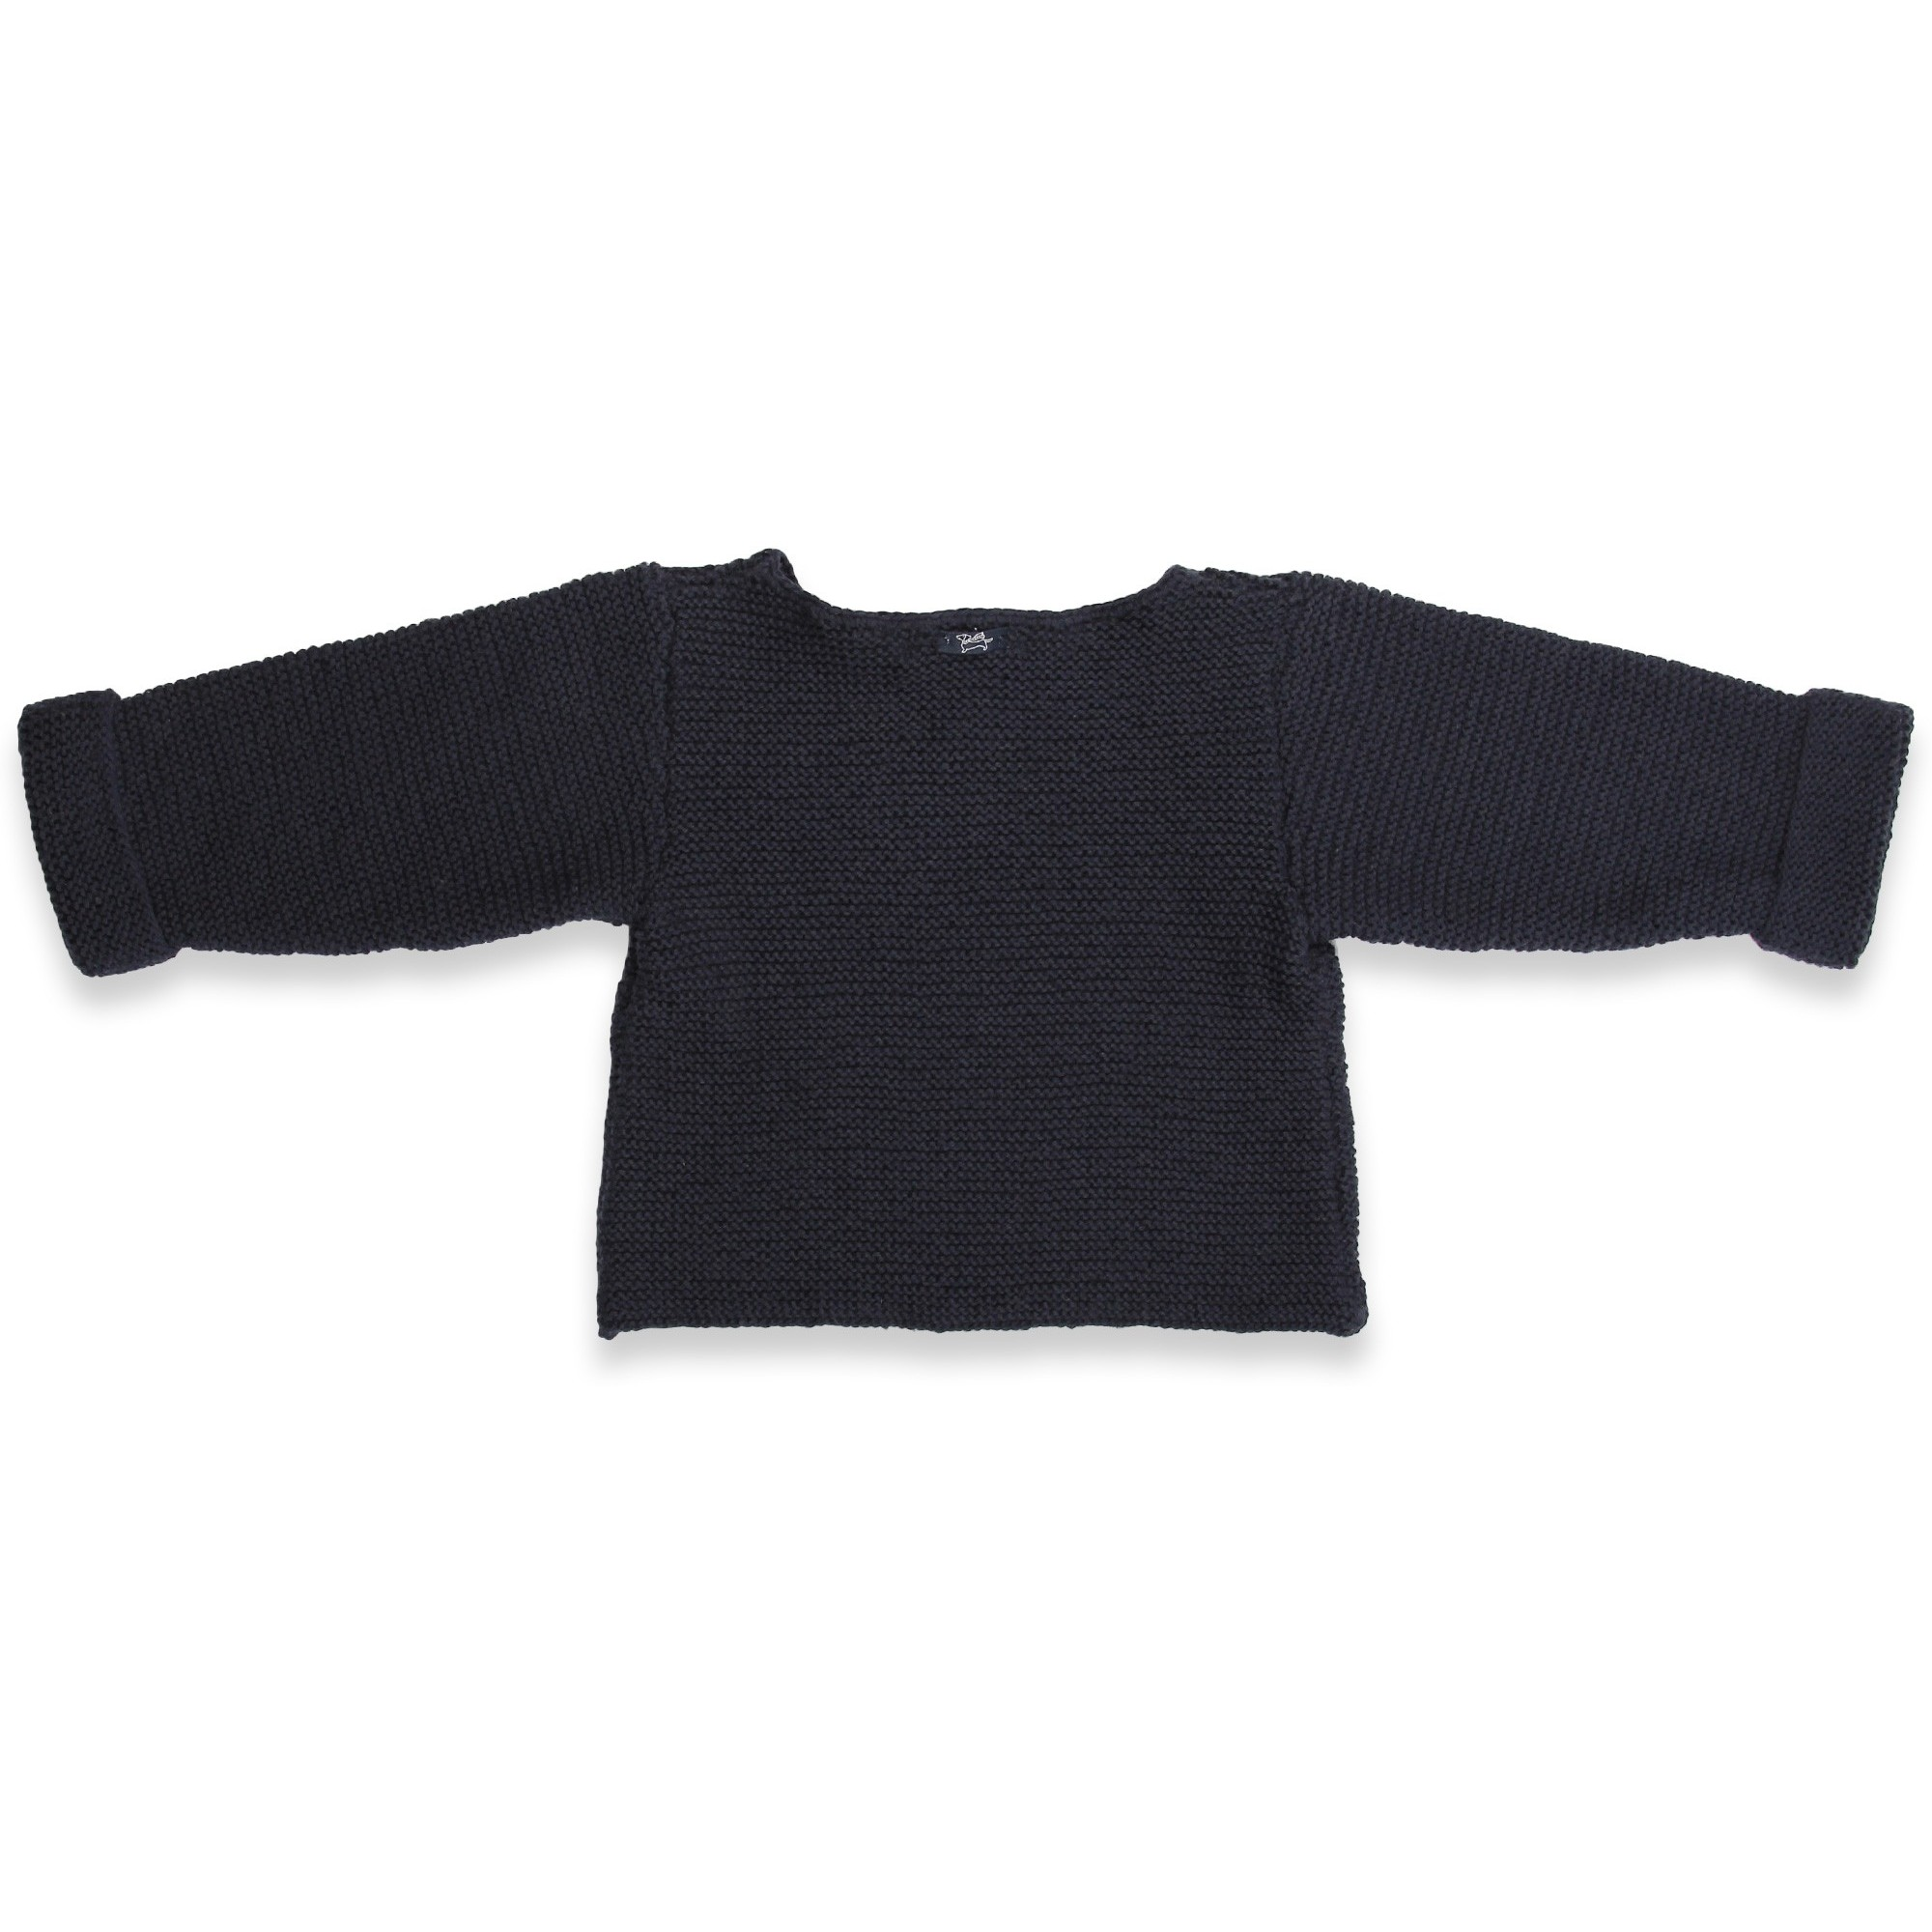 Navy blue baby sweater knitted in moss stitches made from cotton and cachemire